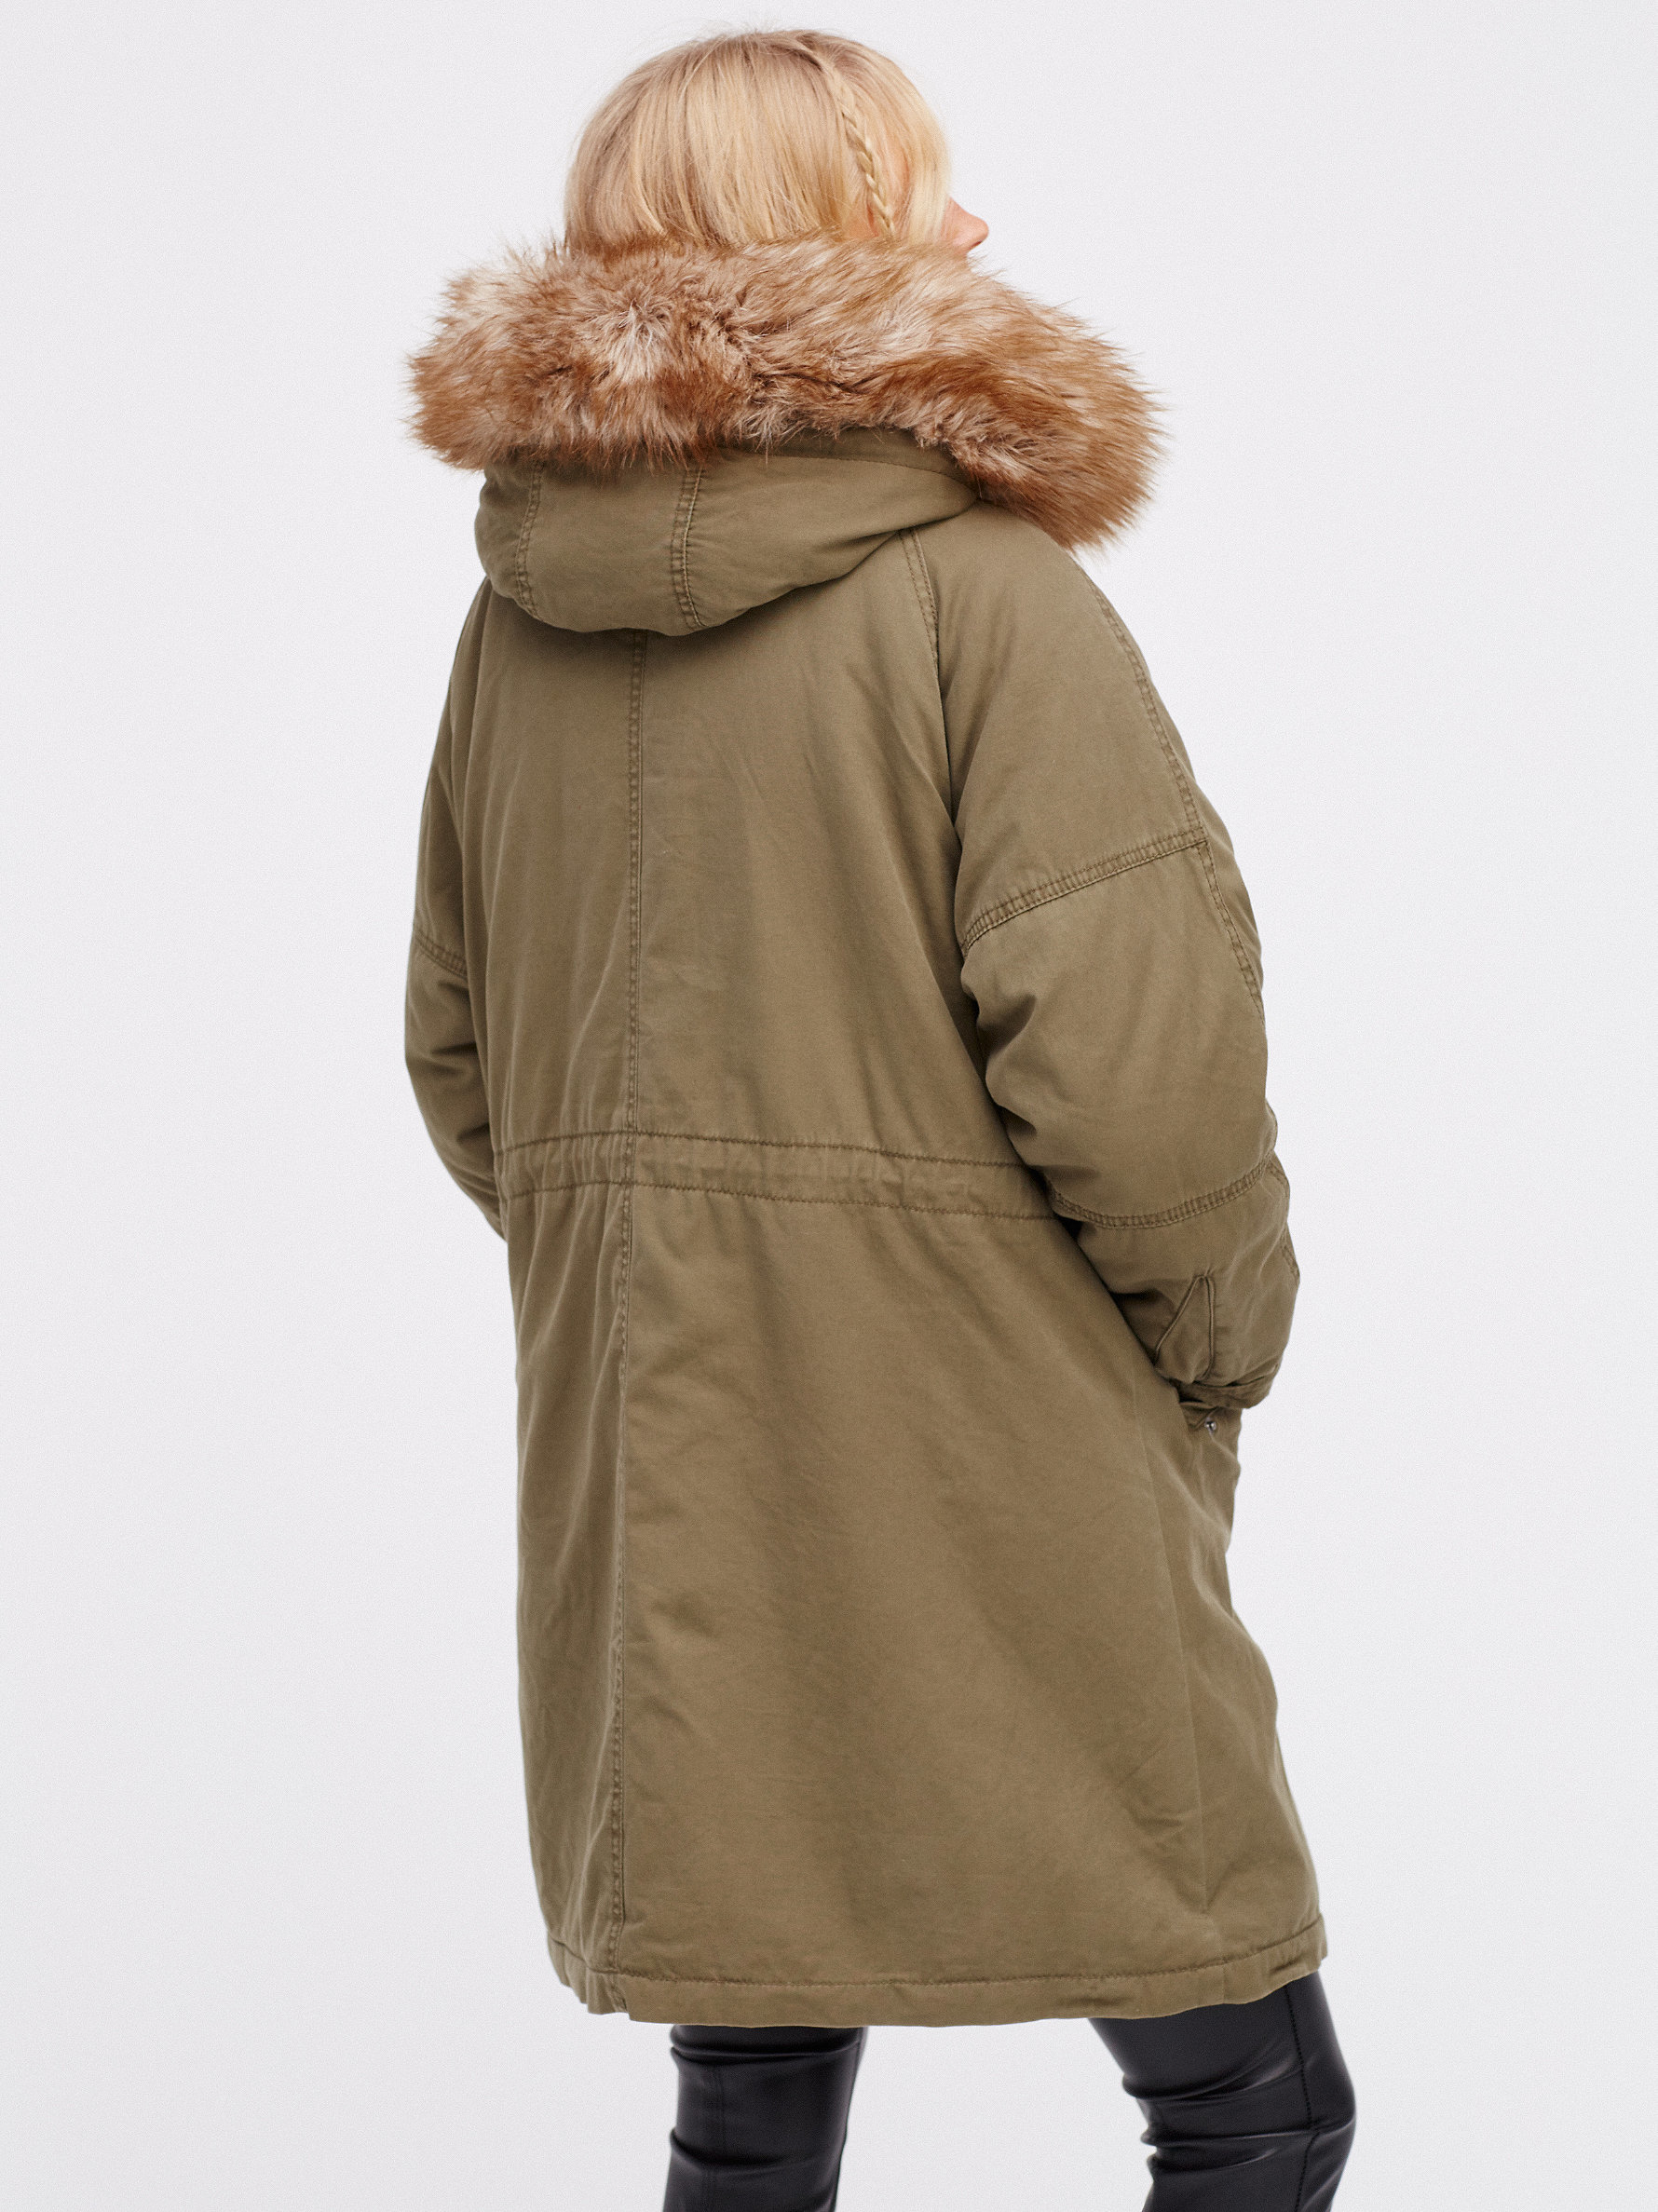 Fur Lined Military Parka